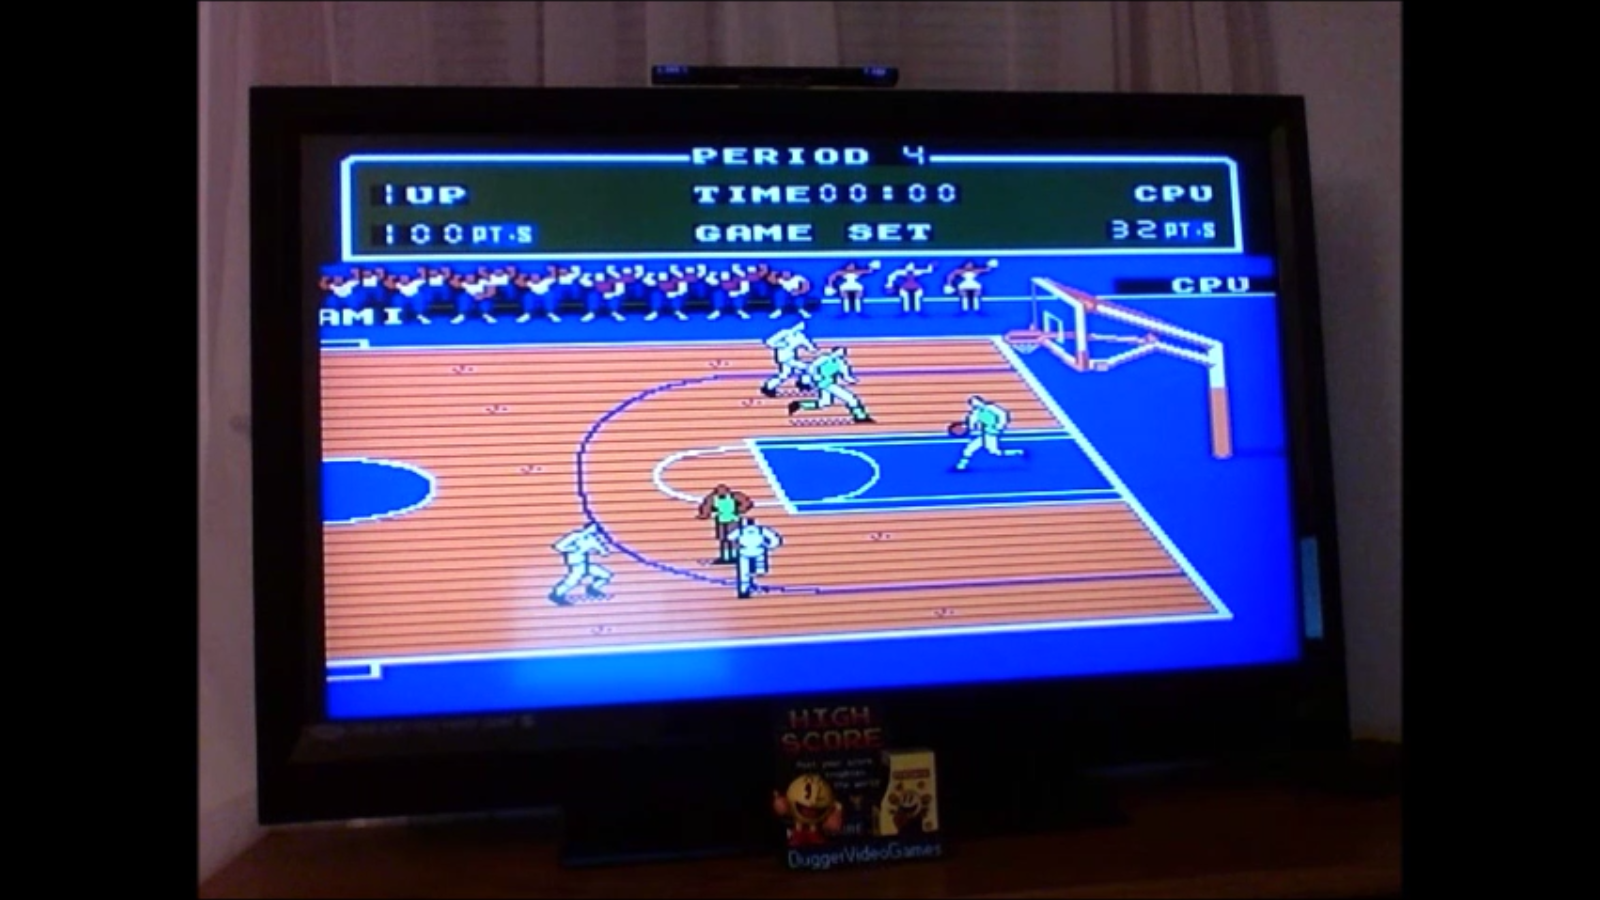 DuggerVideoGames: Double Dribble [Point Difference] [Level 3] (NES/Famicom Emulated) 68 points on 2016-12-02 05:09:03